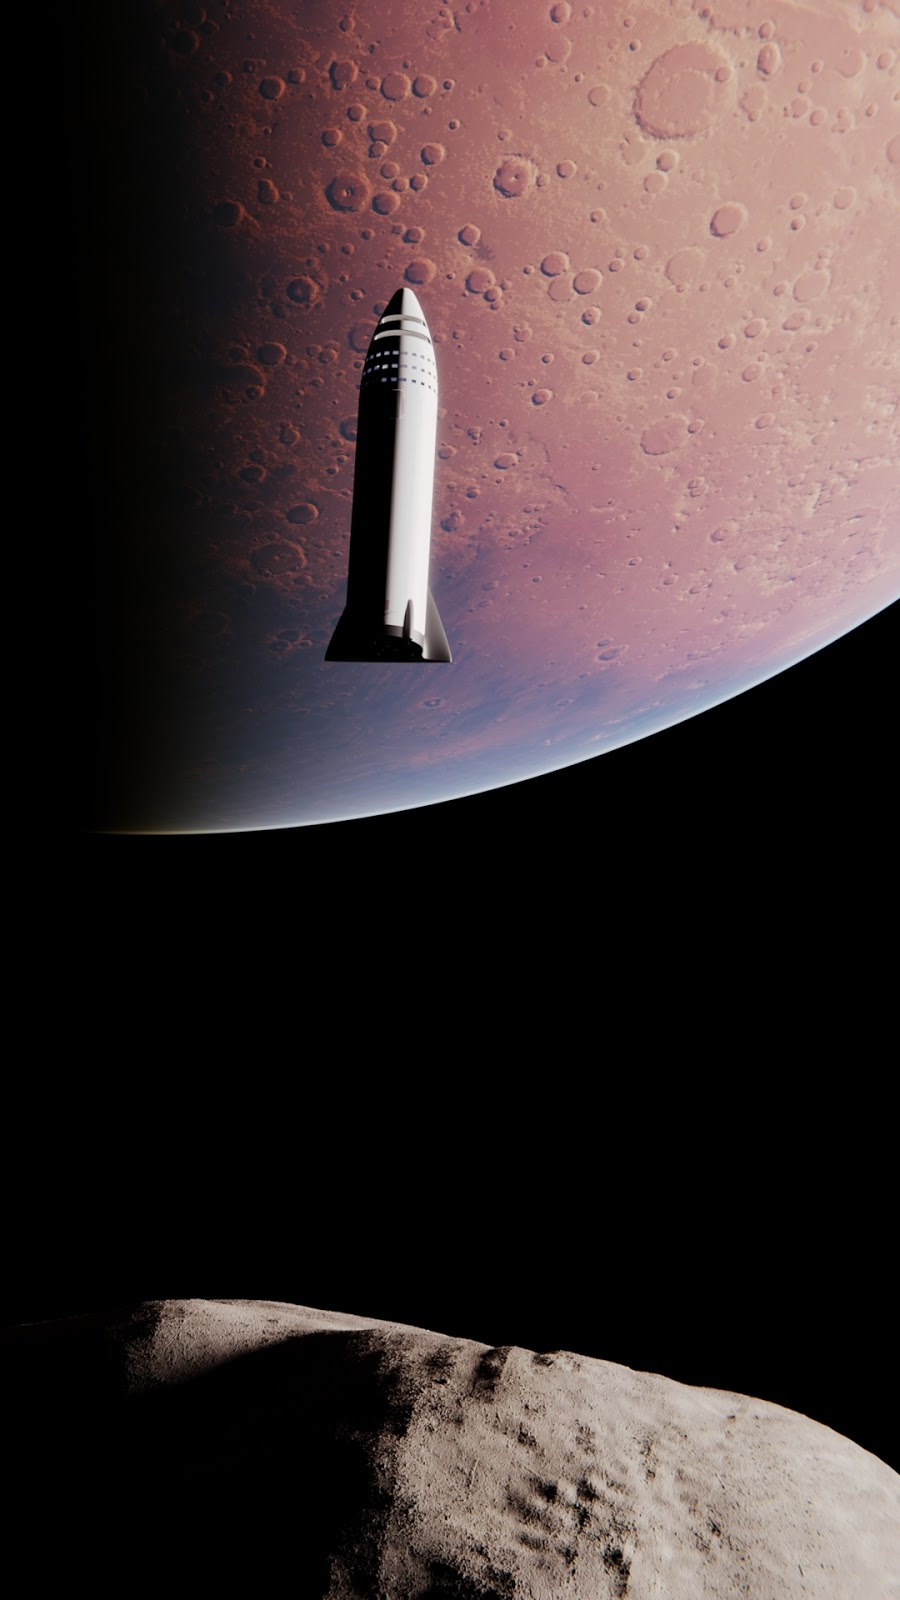 SpaceX BFR spaceship approaching Phobos by Mack Crawford